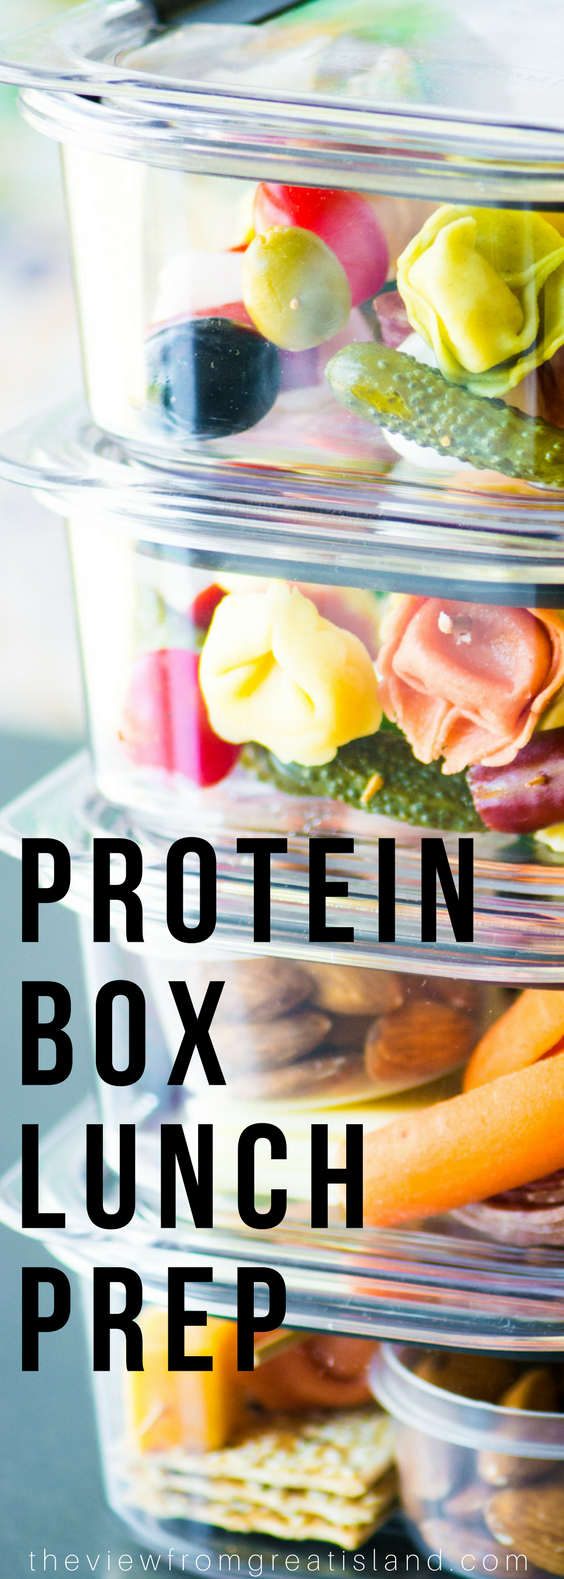 Easy Lunch Prep with Three Bridges Tortellini ~ these energy packed protein boxes made with mini tortellini skewers will set you up for healthy lunches and snacking! #mealprep #lunchprep #healthysnacks #healthylunch #lunchbox #backtoschool #kidslunch #skewers #pasta